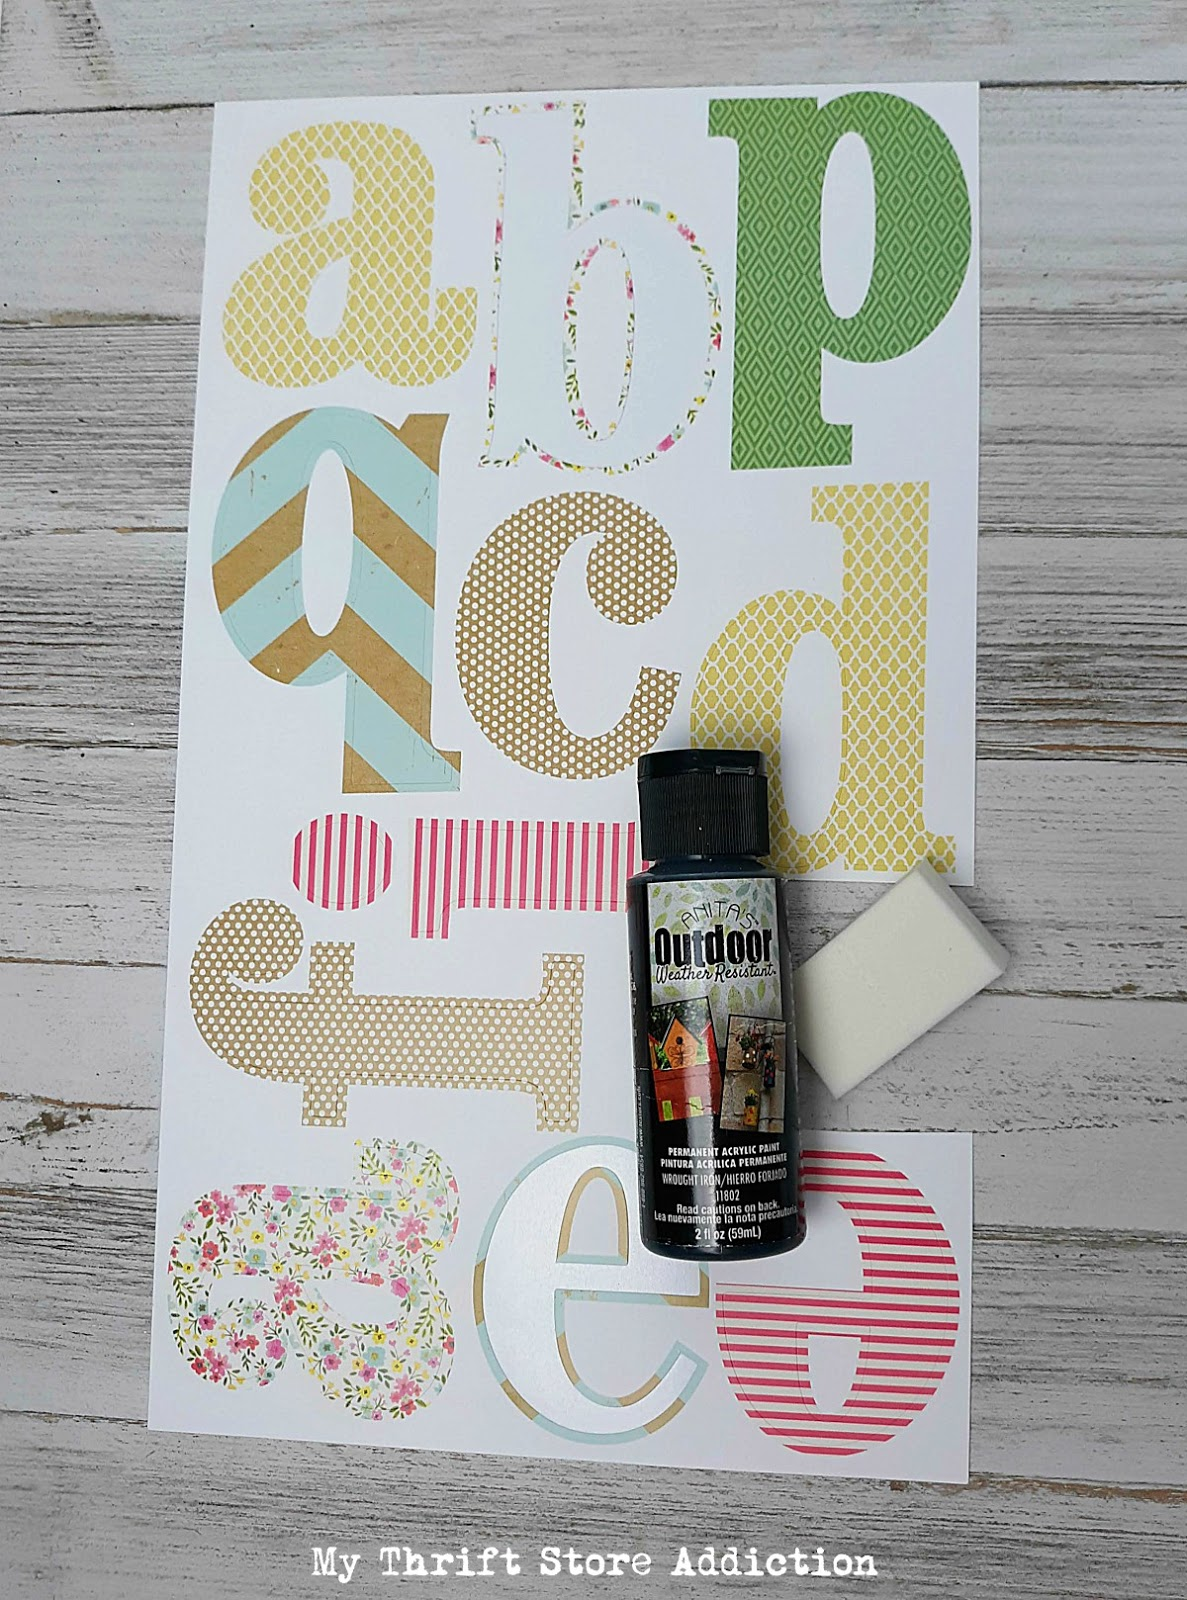 DIY stencil using leftover stickers